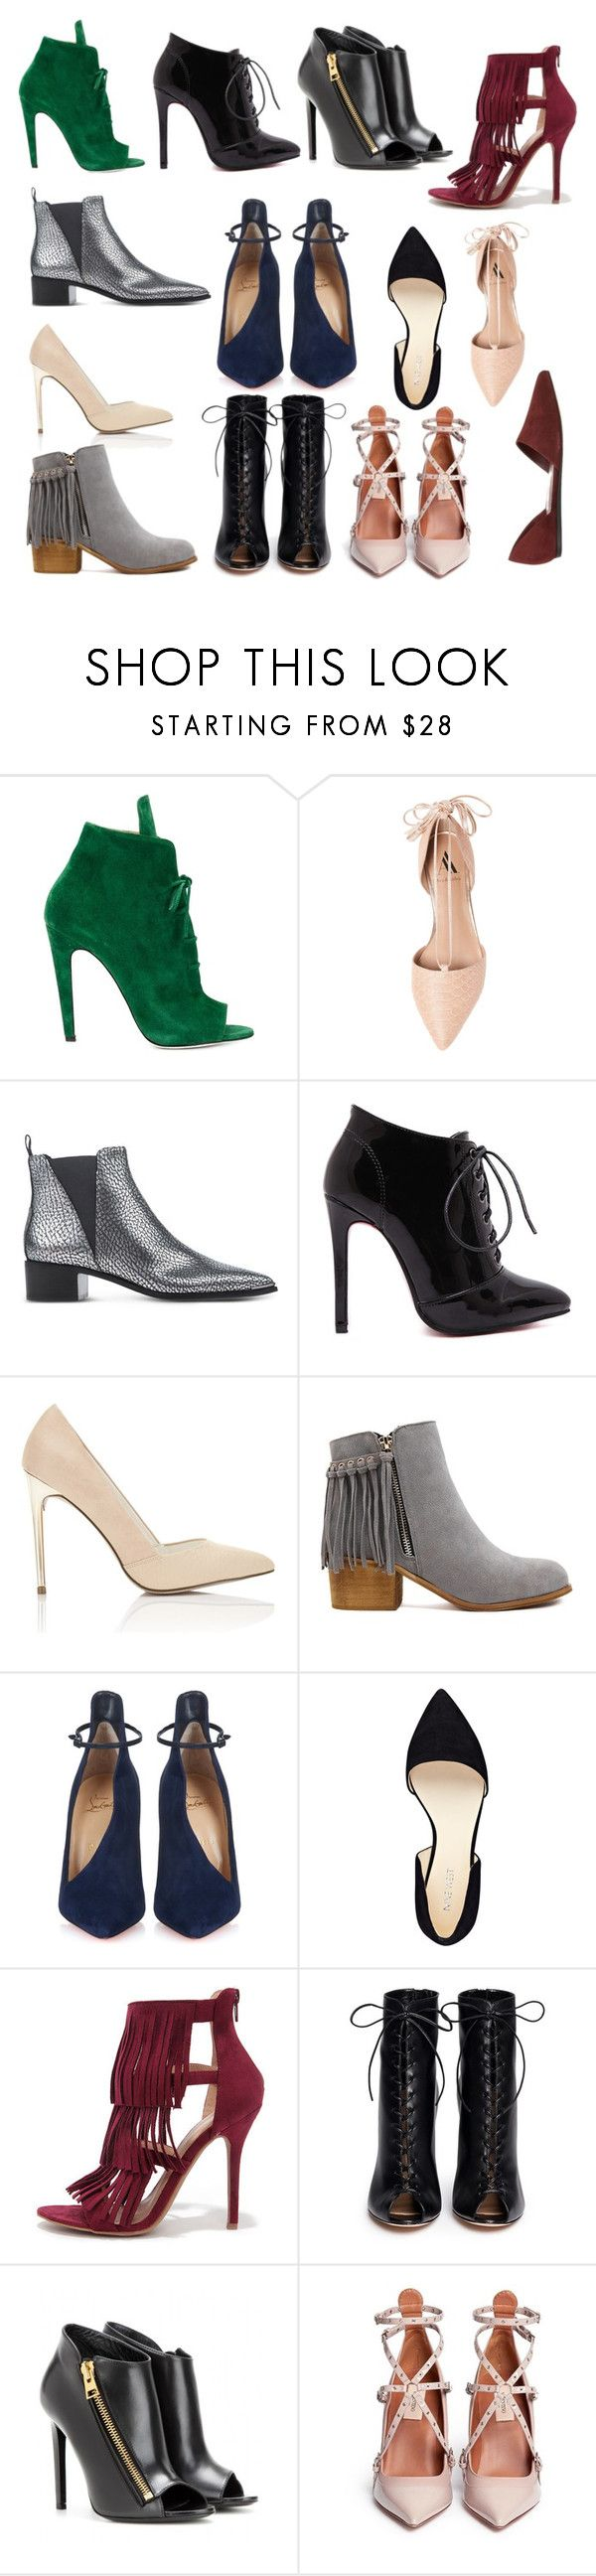 """""""Schoenen"""" by zoe-100 ❤ liked on Polyvore featuring Off-White, Ava & Aiden, Acne Studios, Miss Selfridge, Christian Louboutin, Nine West, Wild Diva, Gianvito Rossi, Tom Ford and Valentino"""